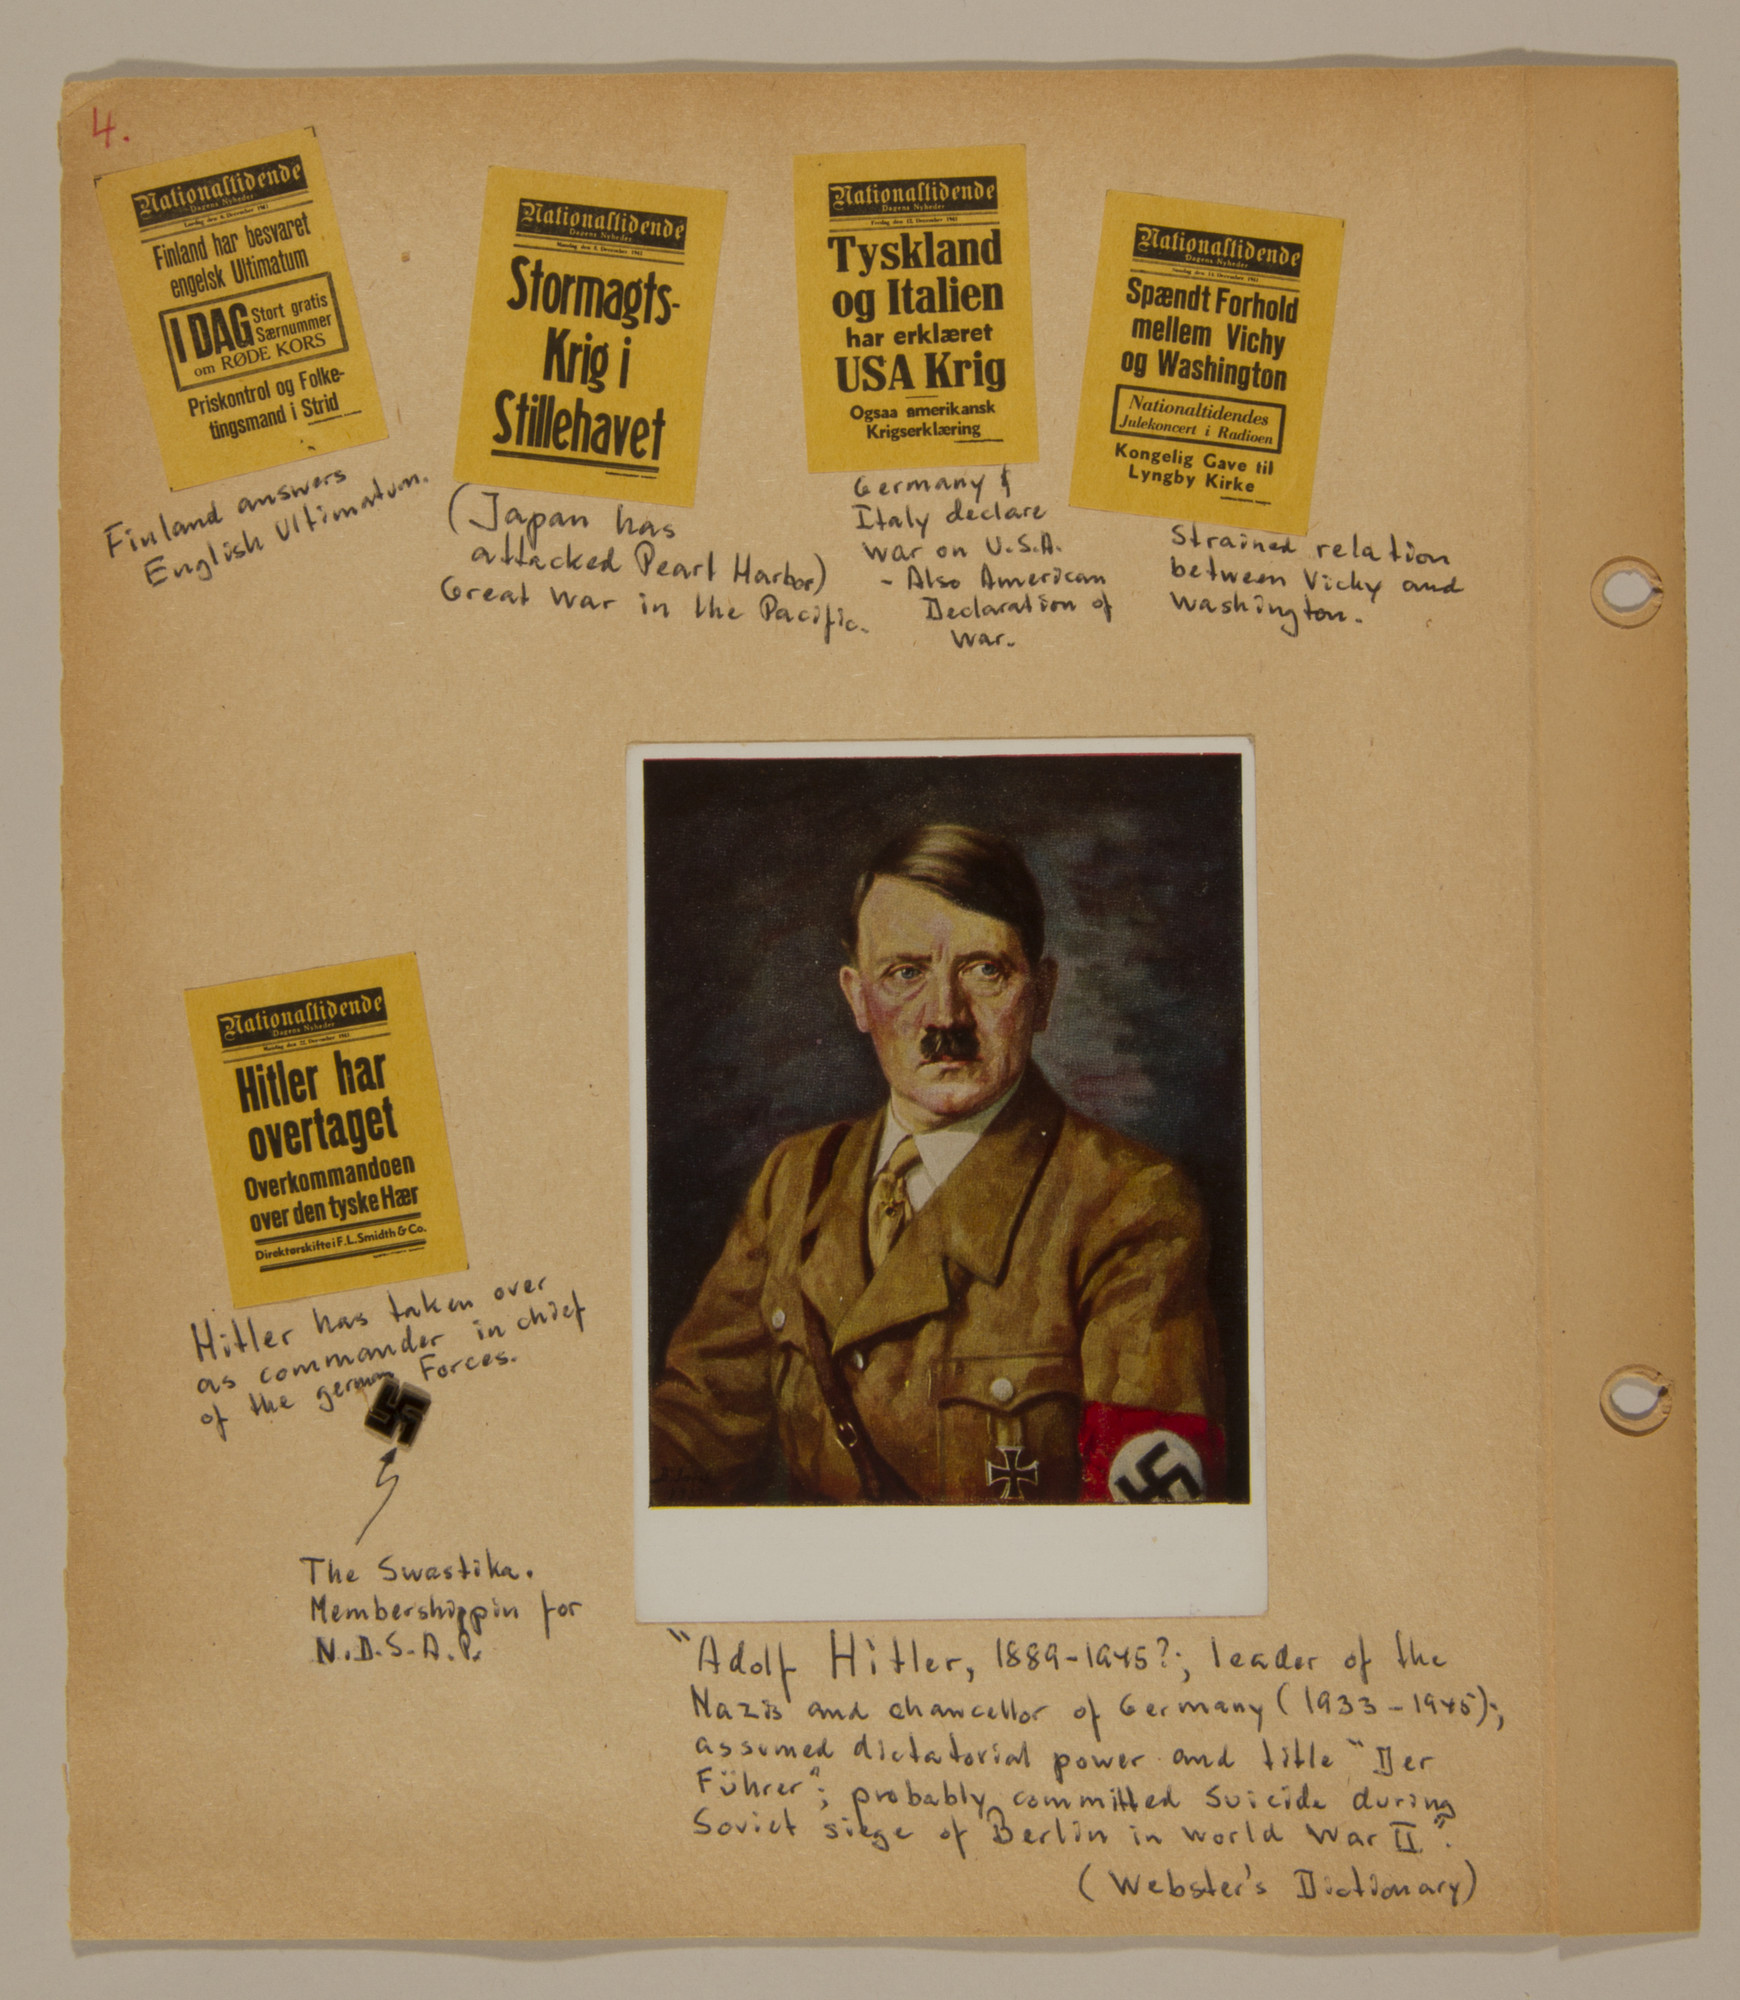 Page from volume two of a set of scrapbooks compiled by Bjorn Sibbern, a Danish policeman and resistance member, documenting the German occupation of Denmark.  This page has a photograph of Adolf Hitler and newspaper headlines about the American entry into World War II.